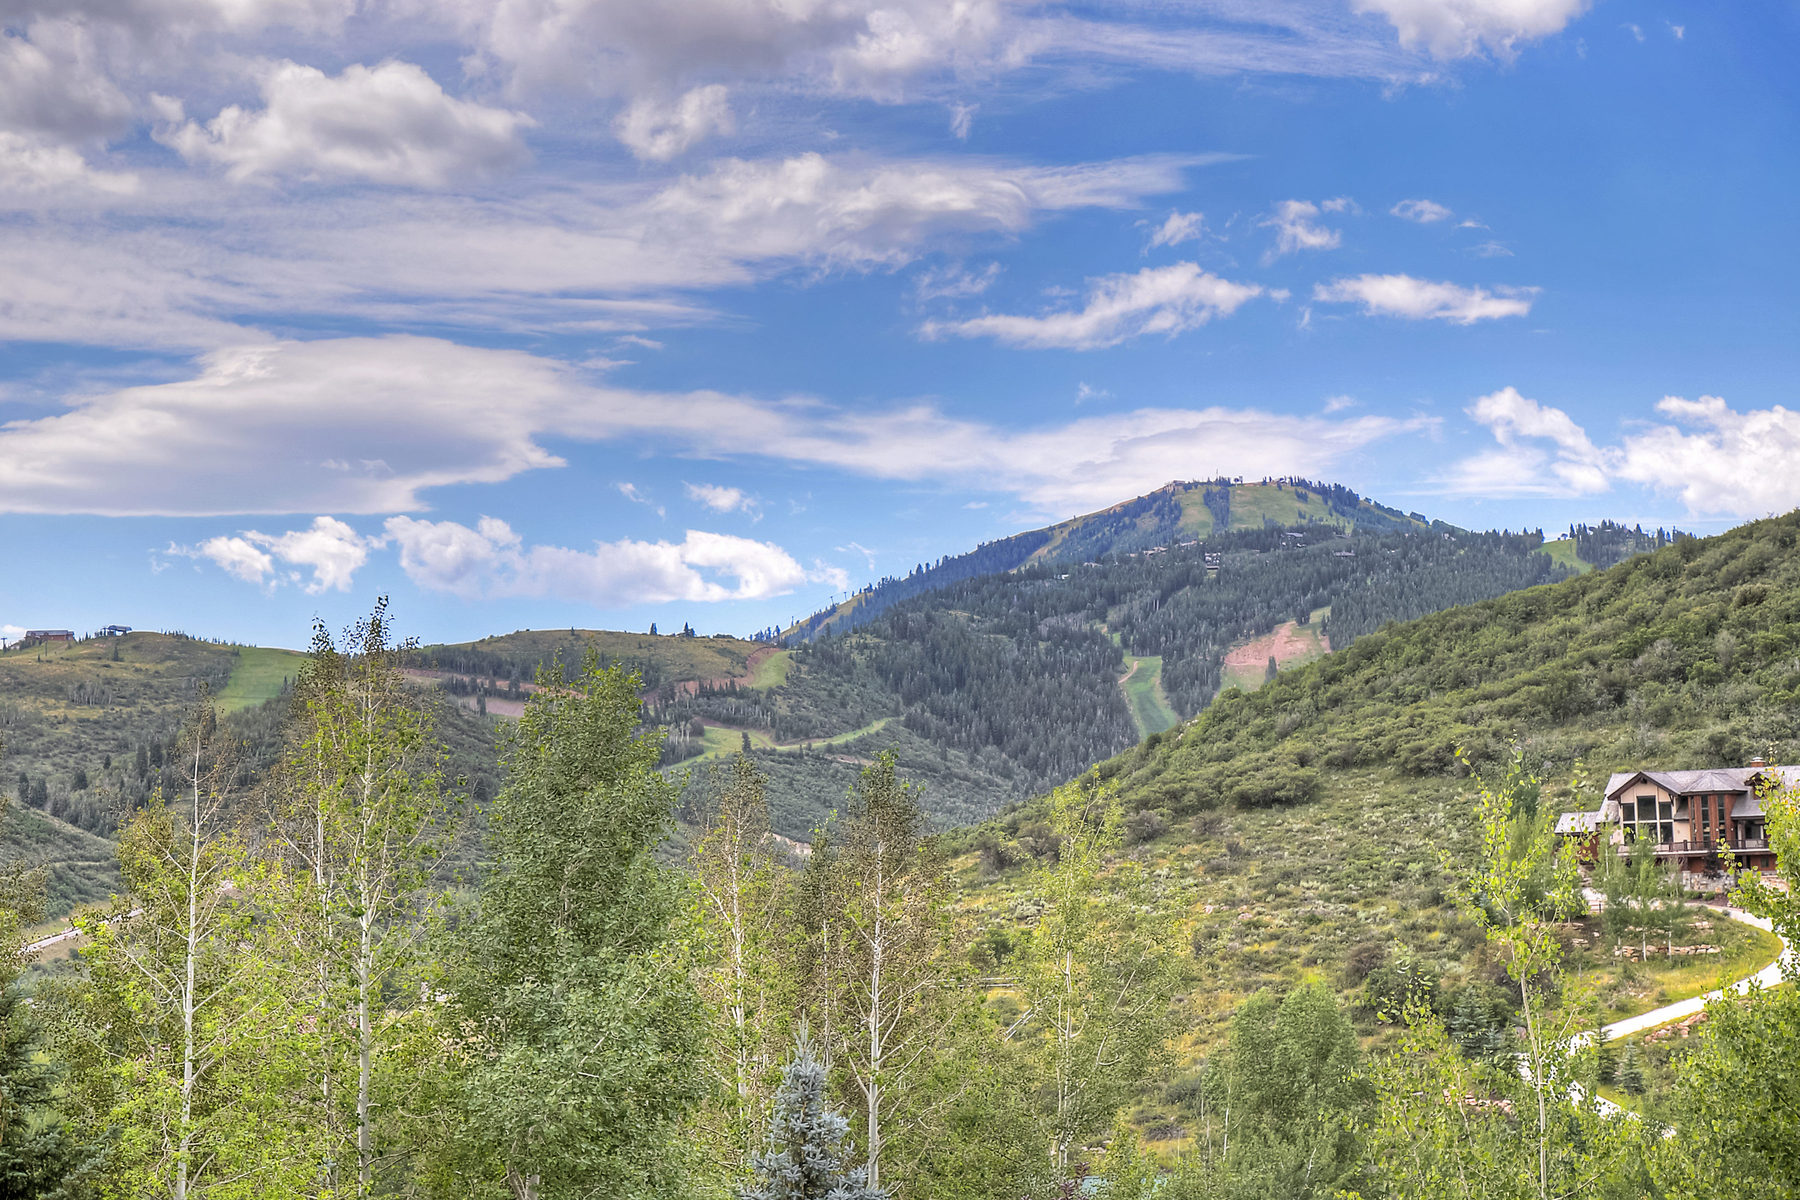 Single Family Home for Sale at Brand New Construction in Lower Deer Valley 3200 Thistle St #99 Park City, Utah 84060 United States